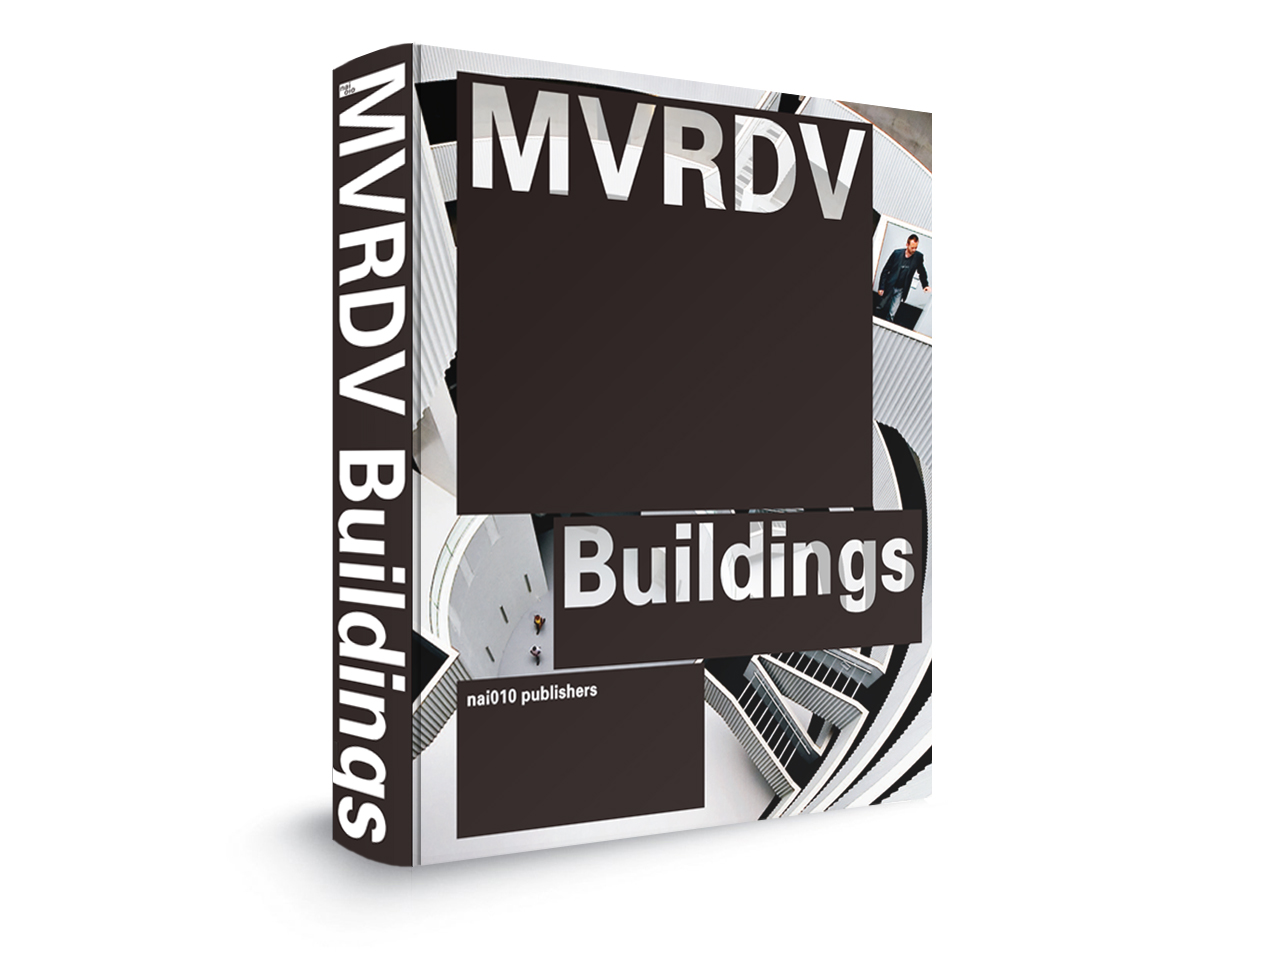 Book Launch: 'MVRDV Buildings' Architectural Monograph